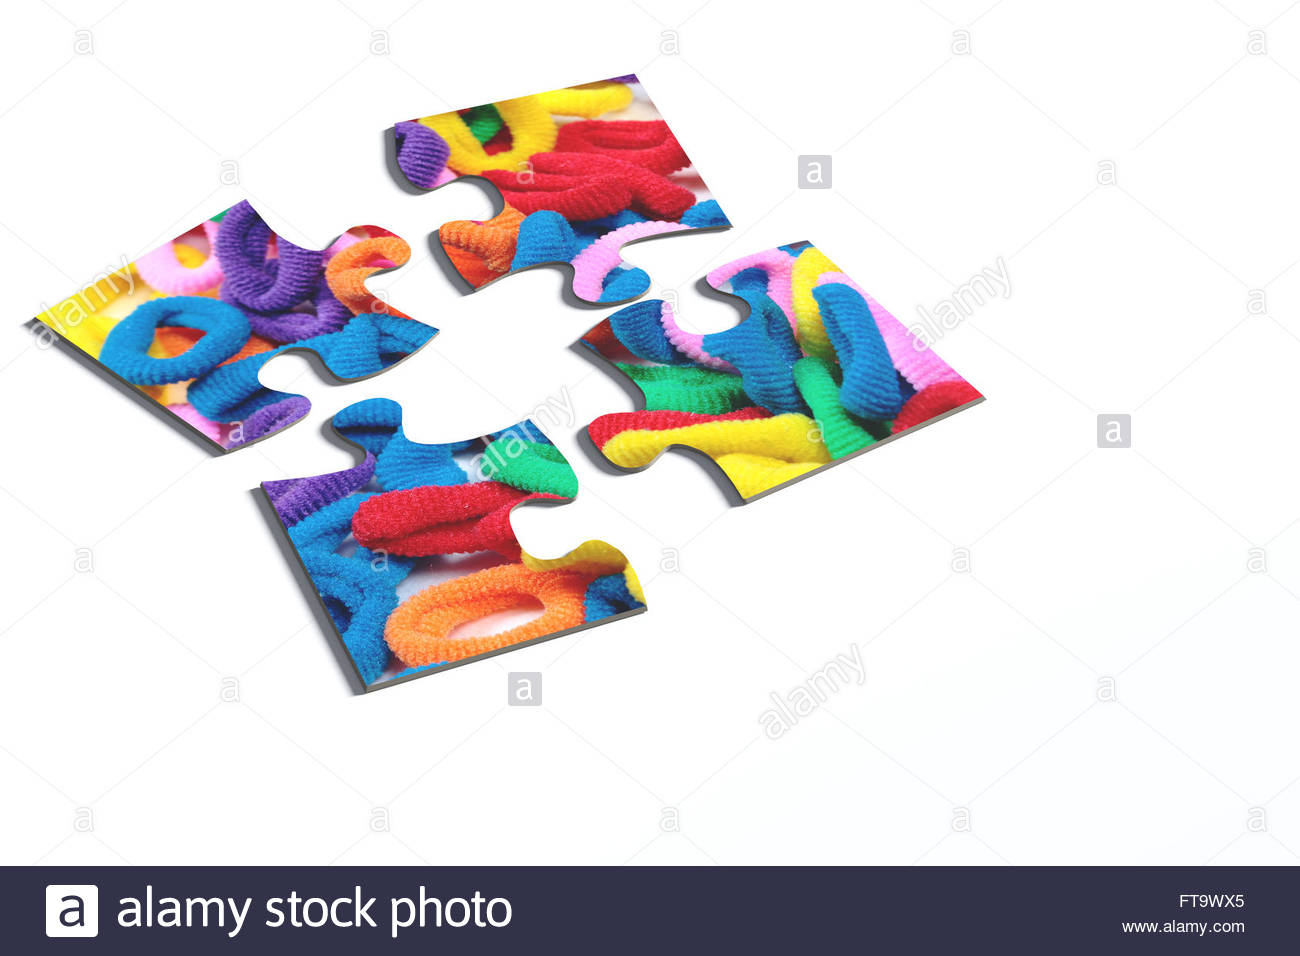 3D Rendering Of An Isolated Puzzle Pieces With Hairband Print On - Print On Puzzle